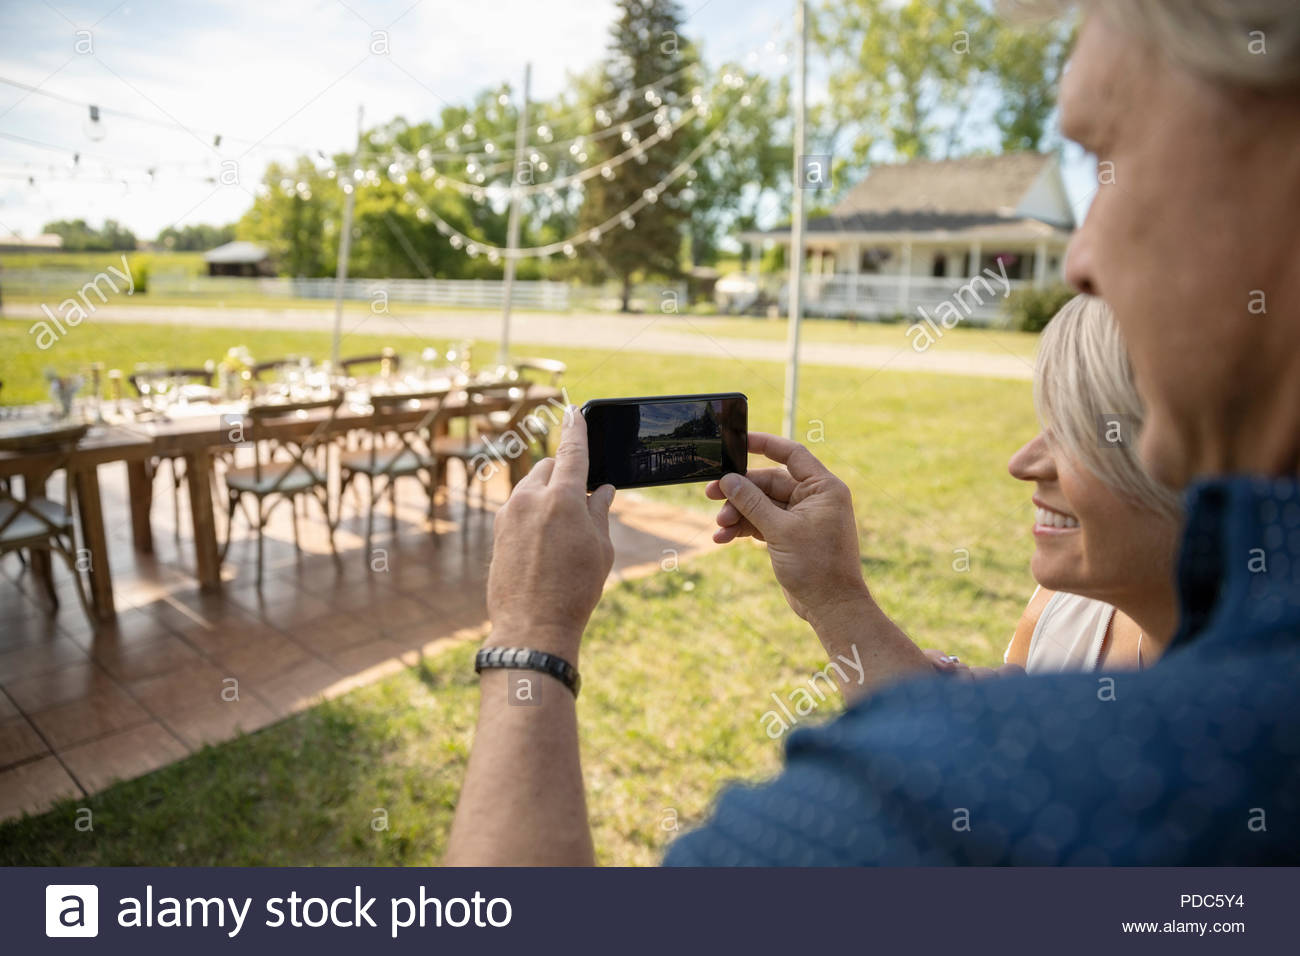 Mature couple with camera phone photographing wedding reception table in rural garden - Stock Image